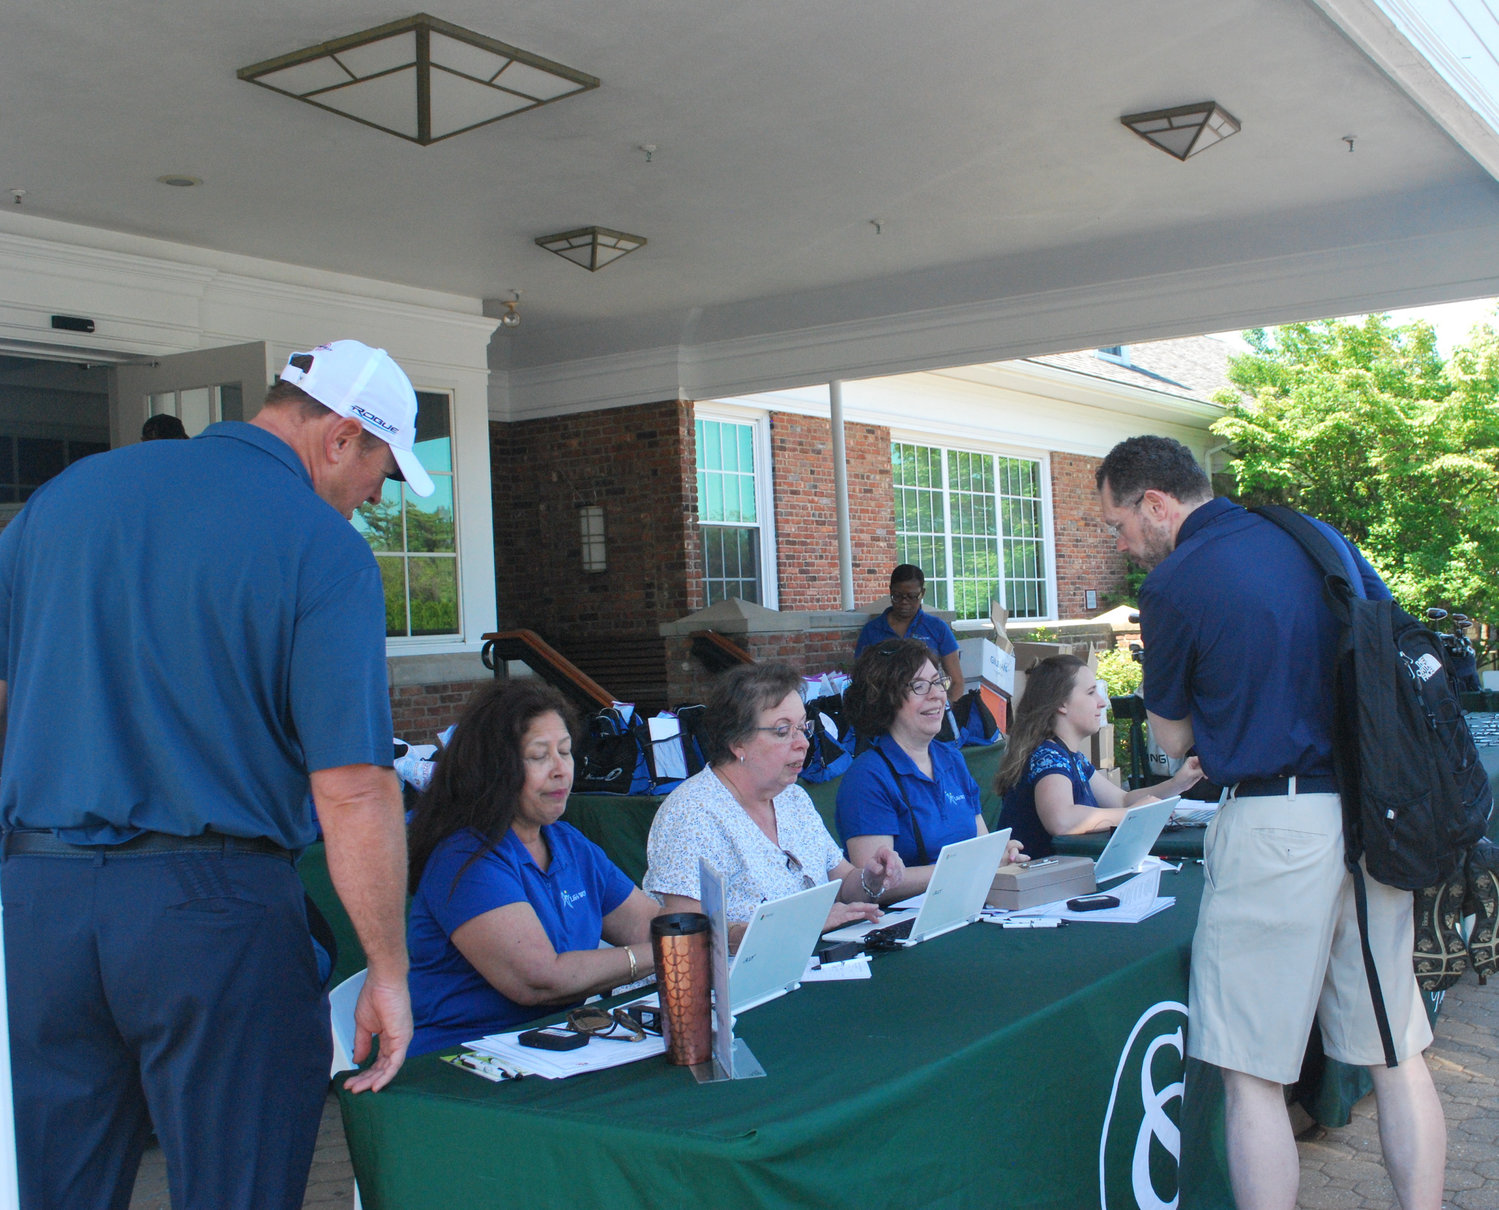 The Seawane Country Club, in Hewlett Harbor, is looking for a buyer. Above, golfers checked in for the 31st annual Life's WORC Geraldo Rivera Golf Classic last May.